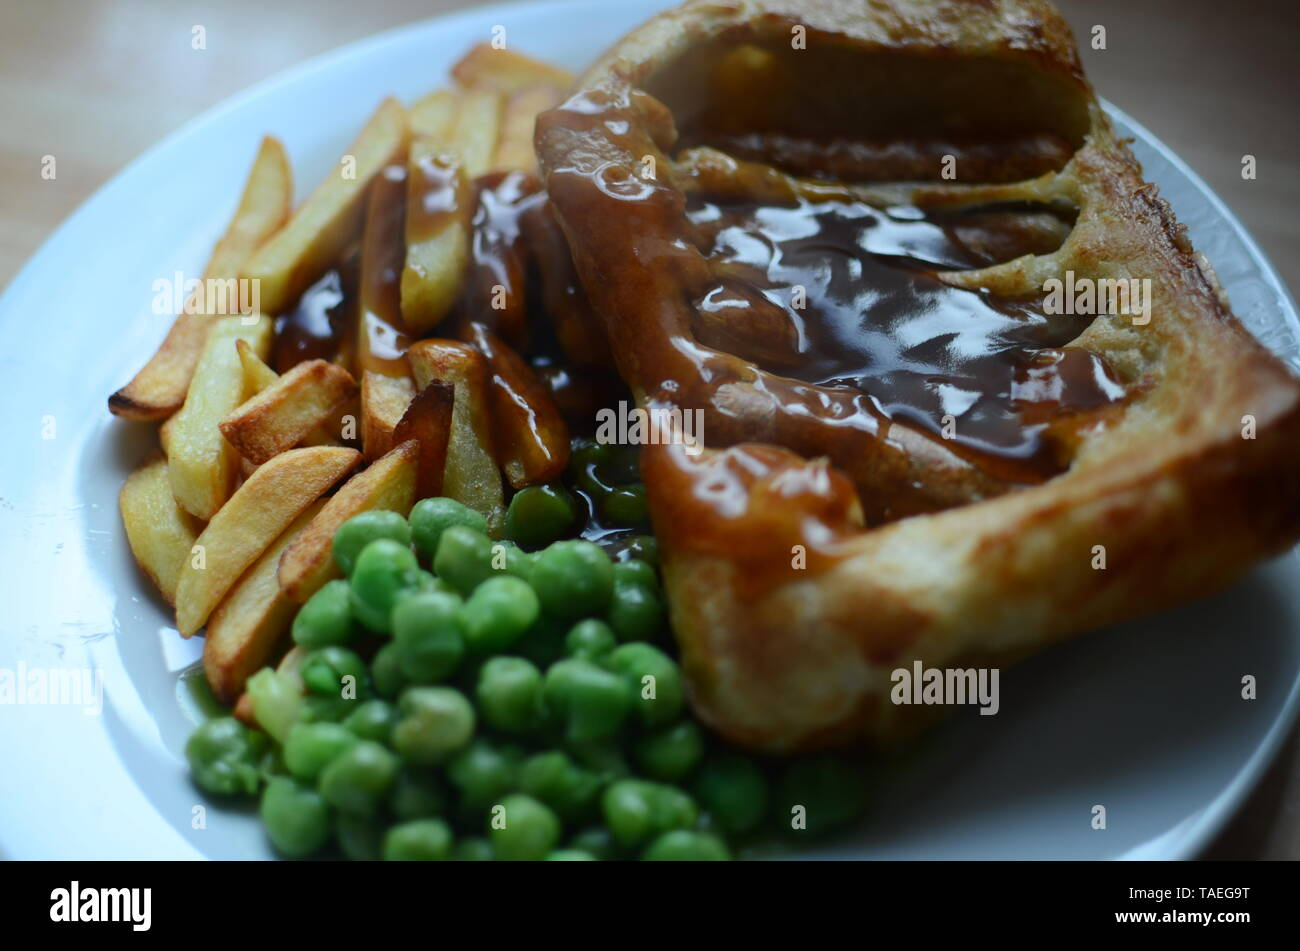 Baked sausages in Yorkshire pudding batter and served with onion gravy, toad in the hole Stock Photo